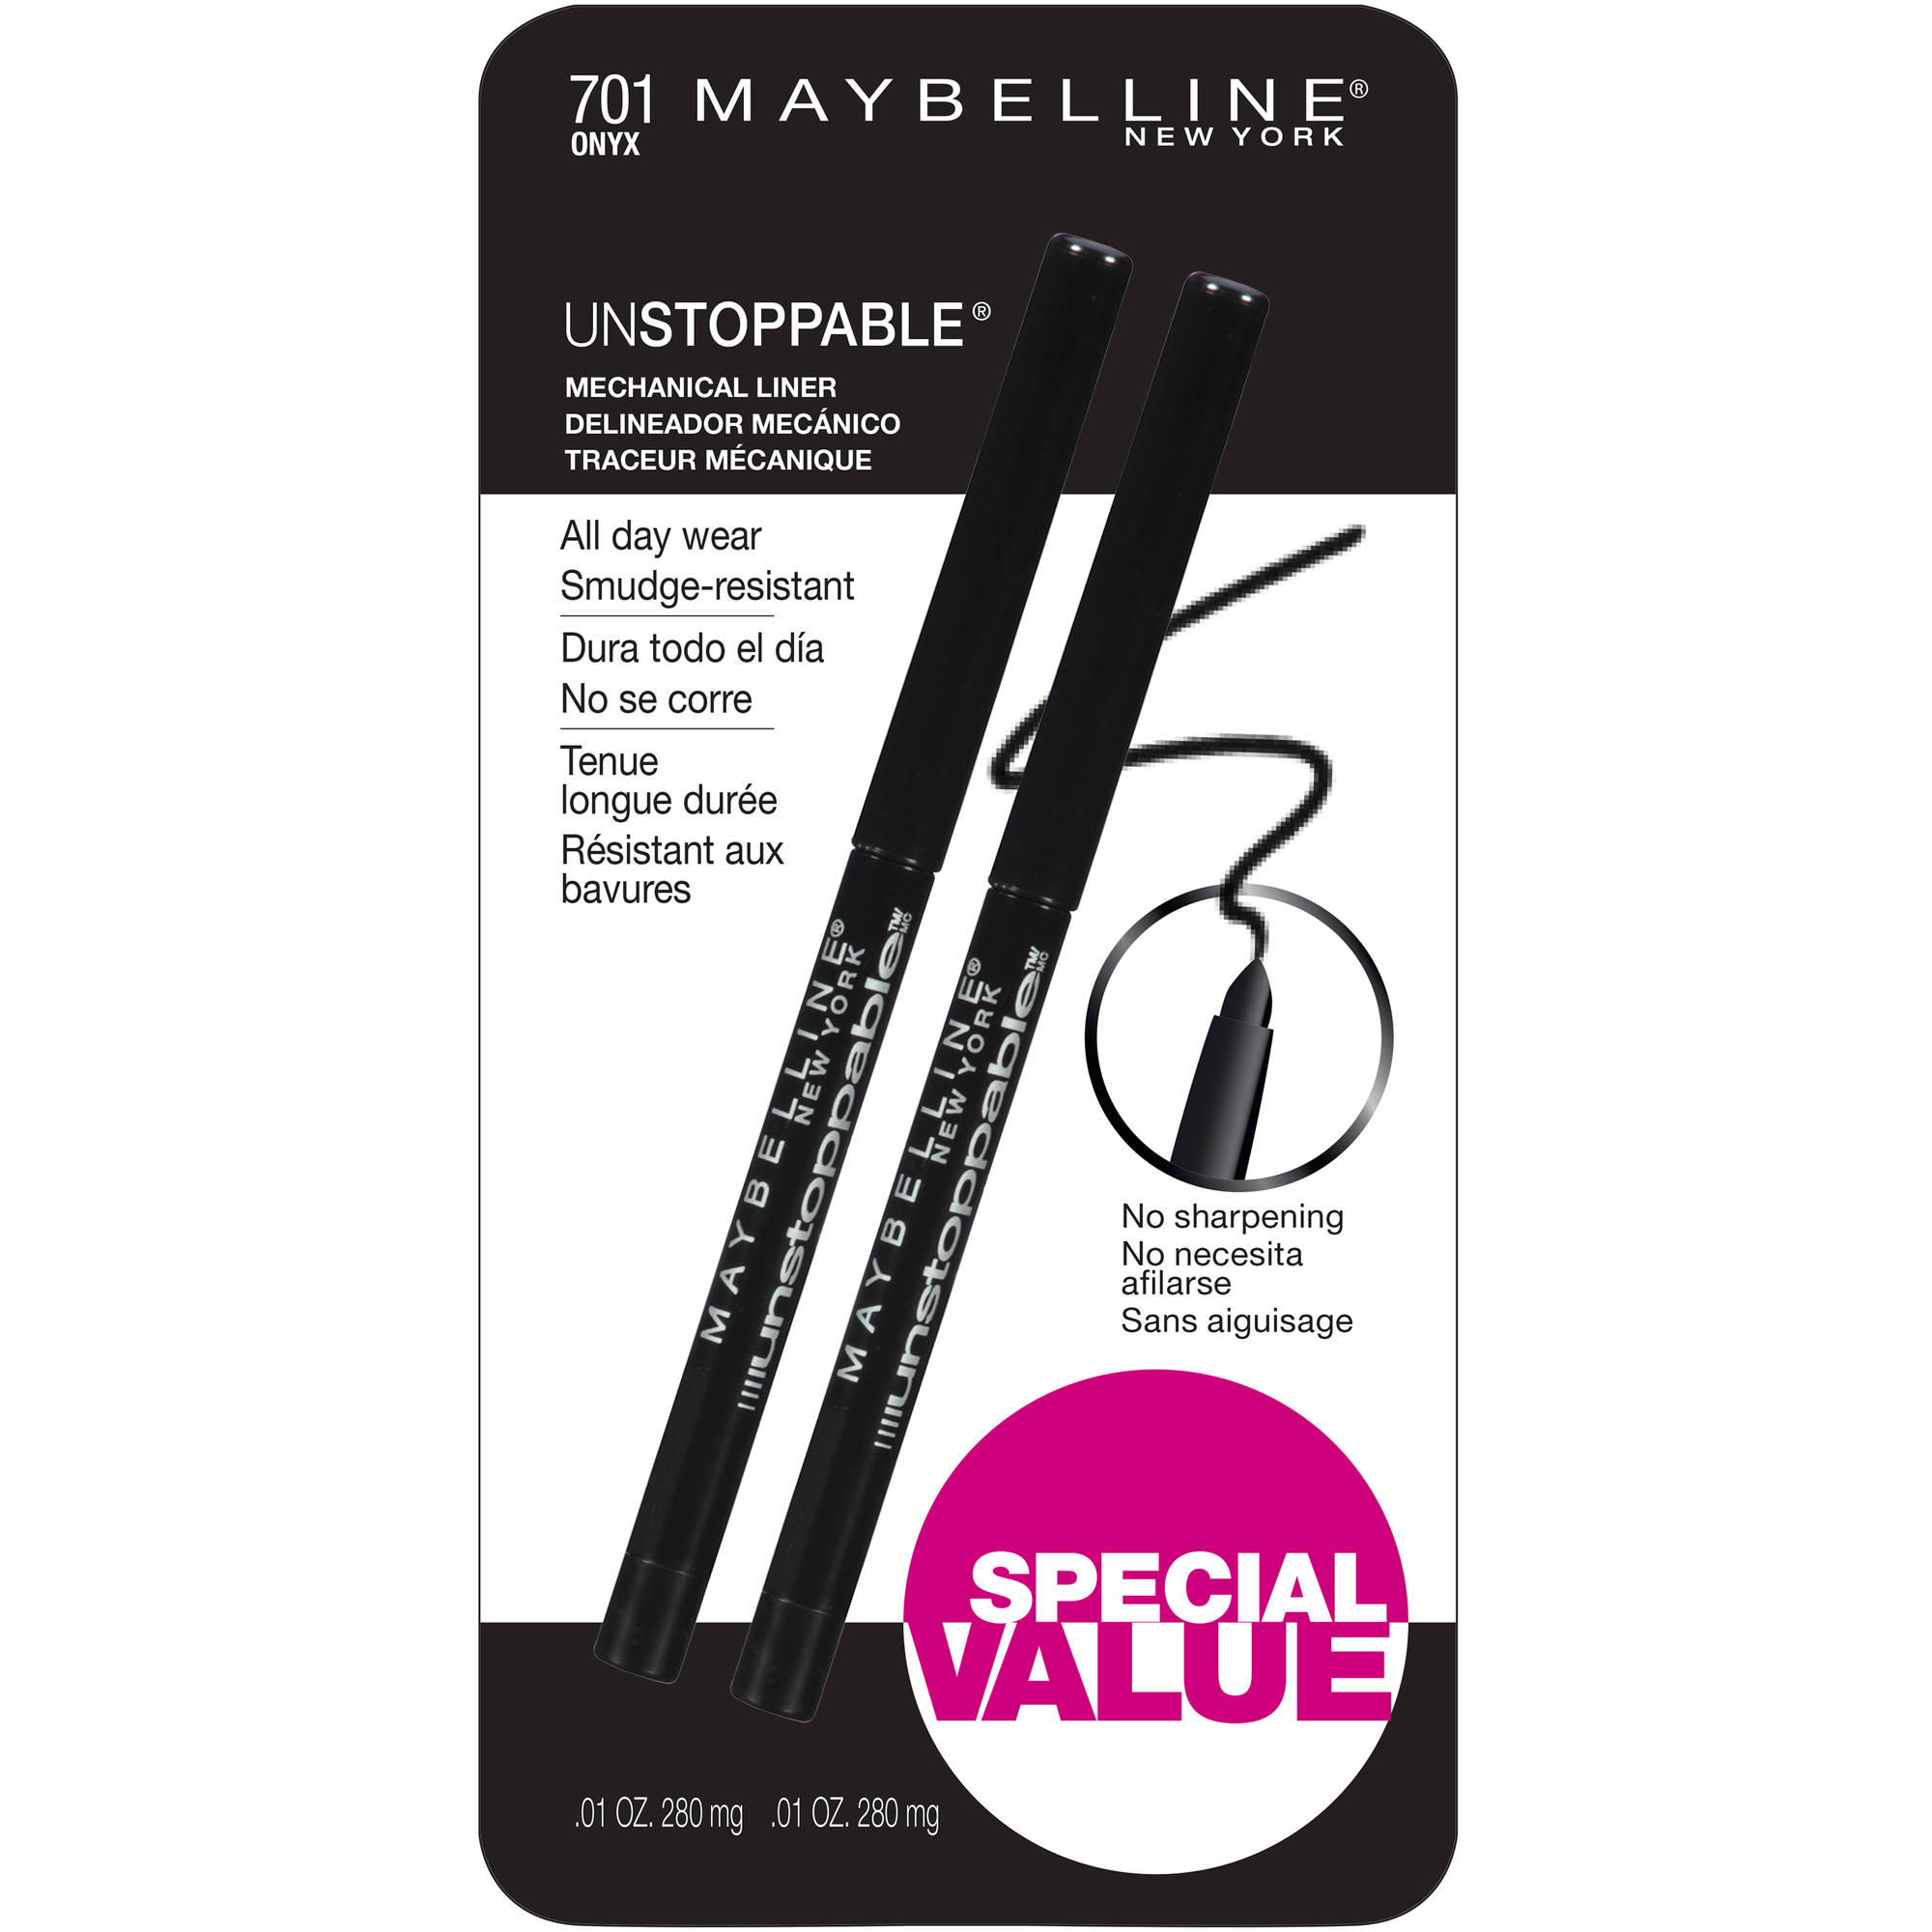 Maybelline New York Unstoppable Eyeliner, 701 Onyx, 0.01 oz, 2 ct